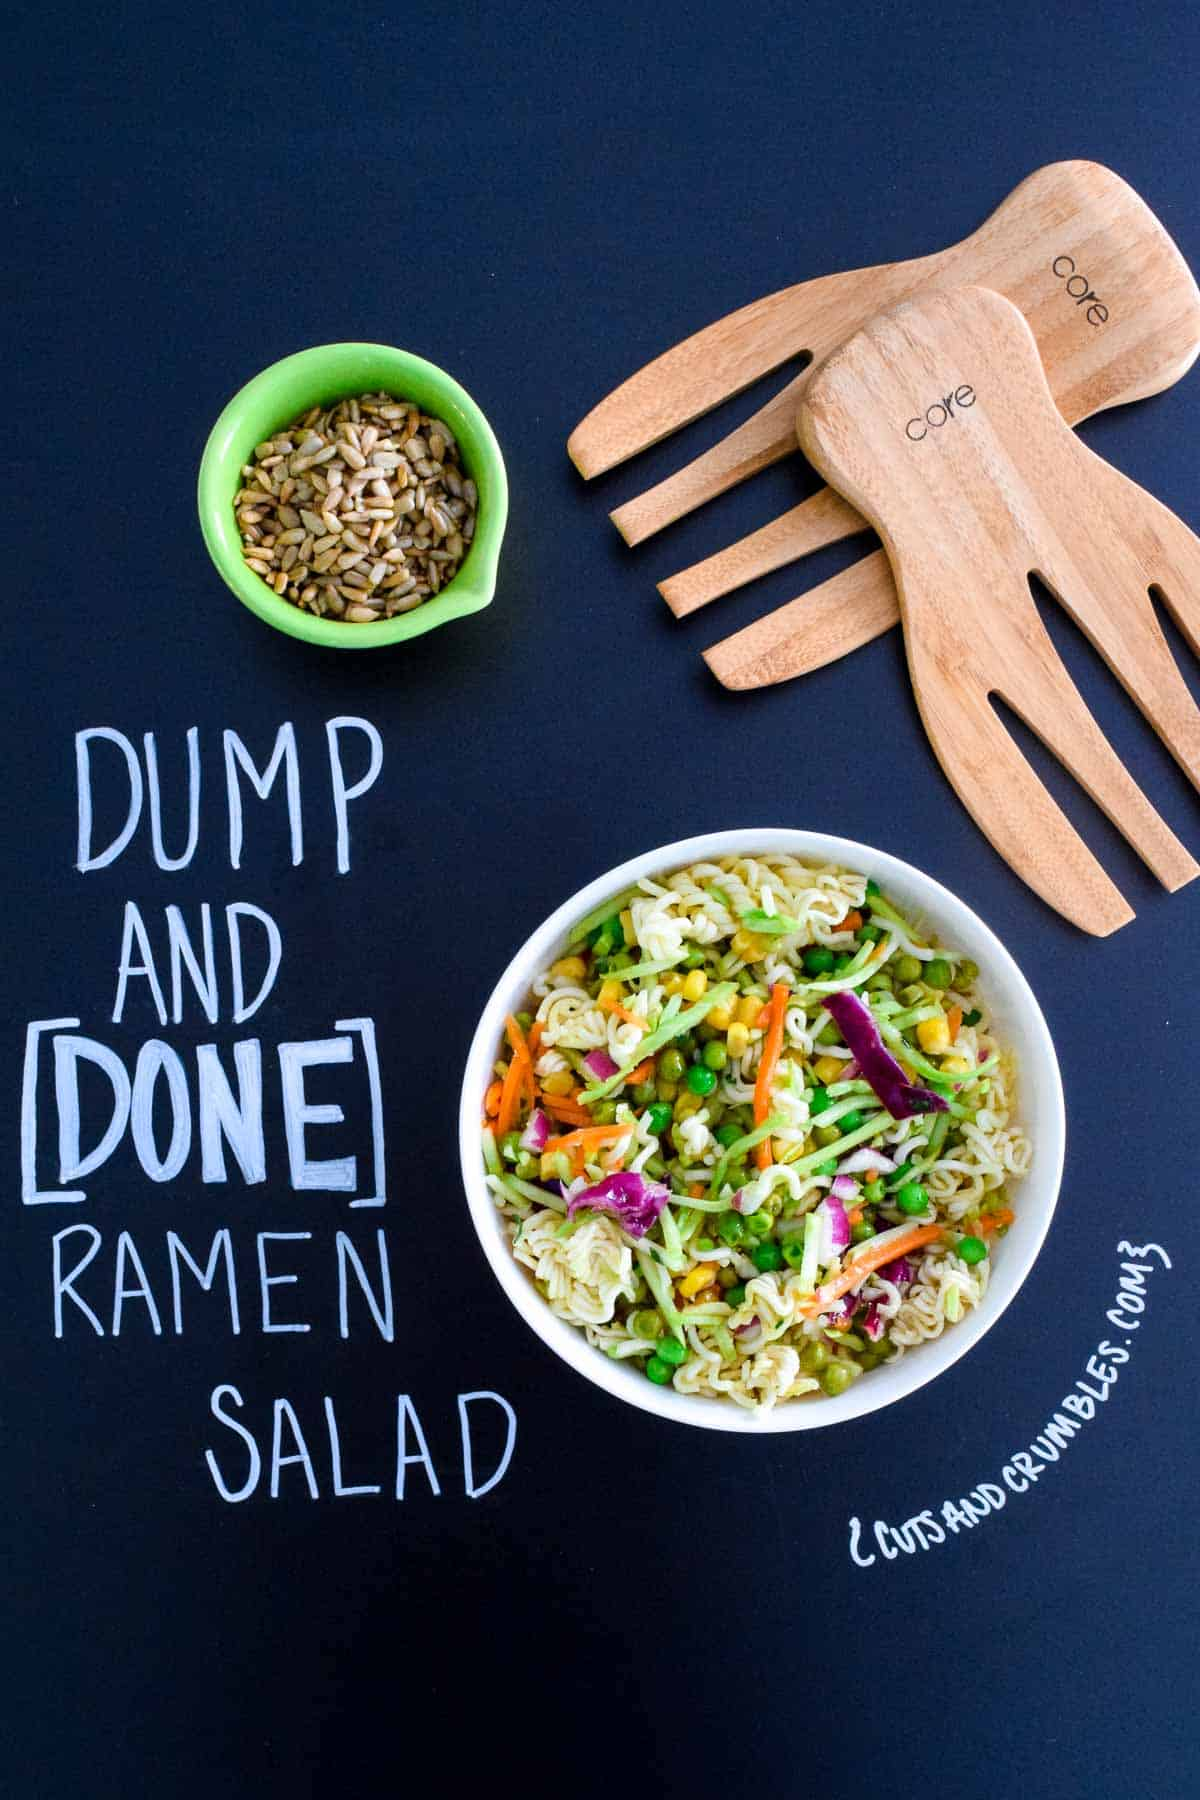 Dump and Done Ramen Salad in white bowl with chalkboard writing